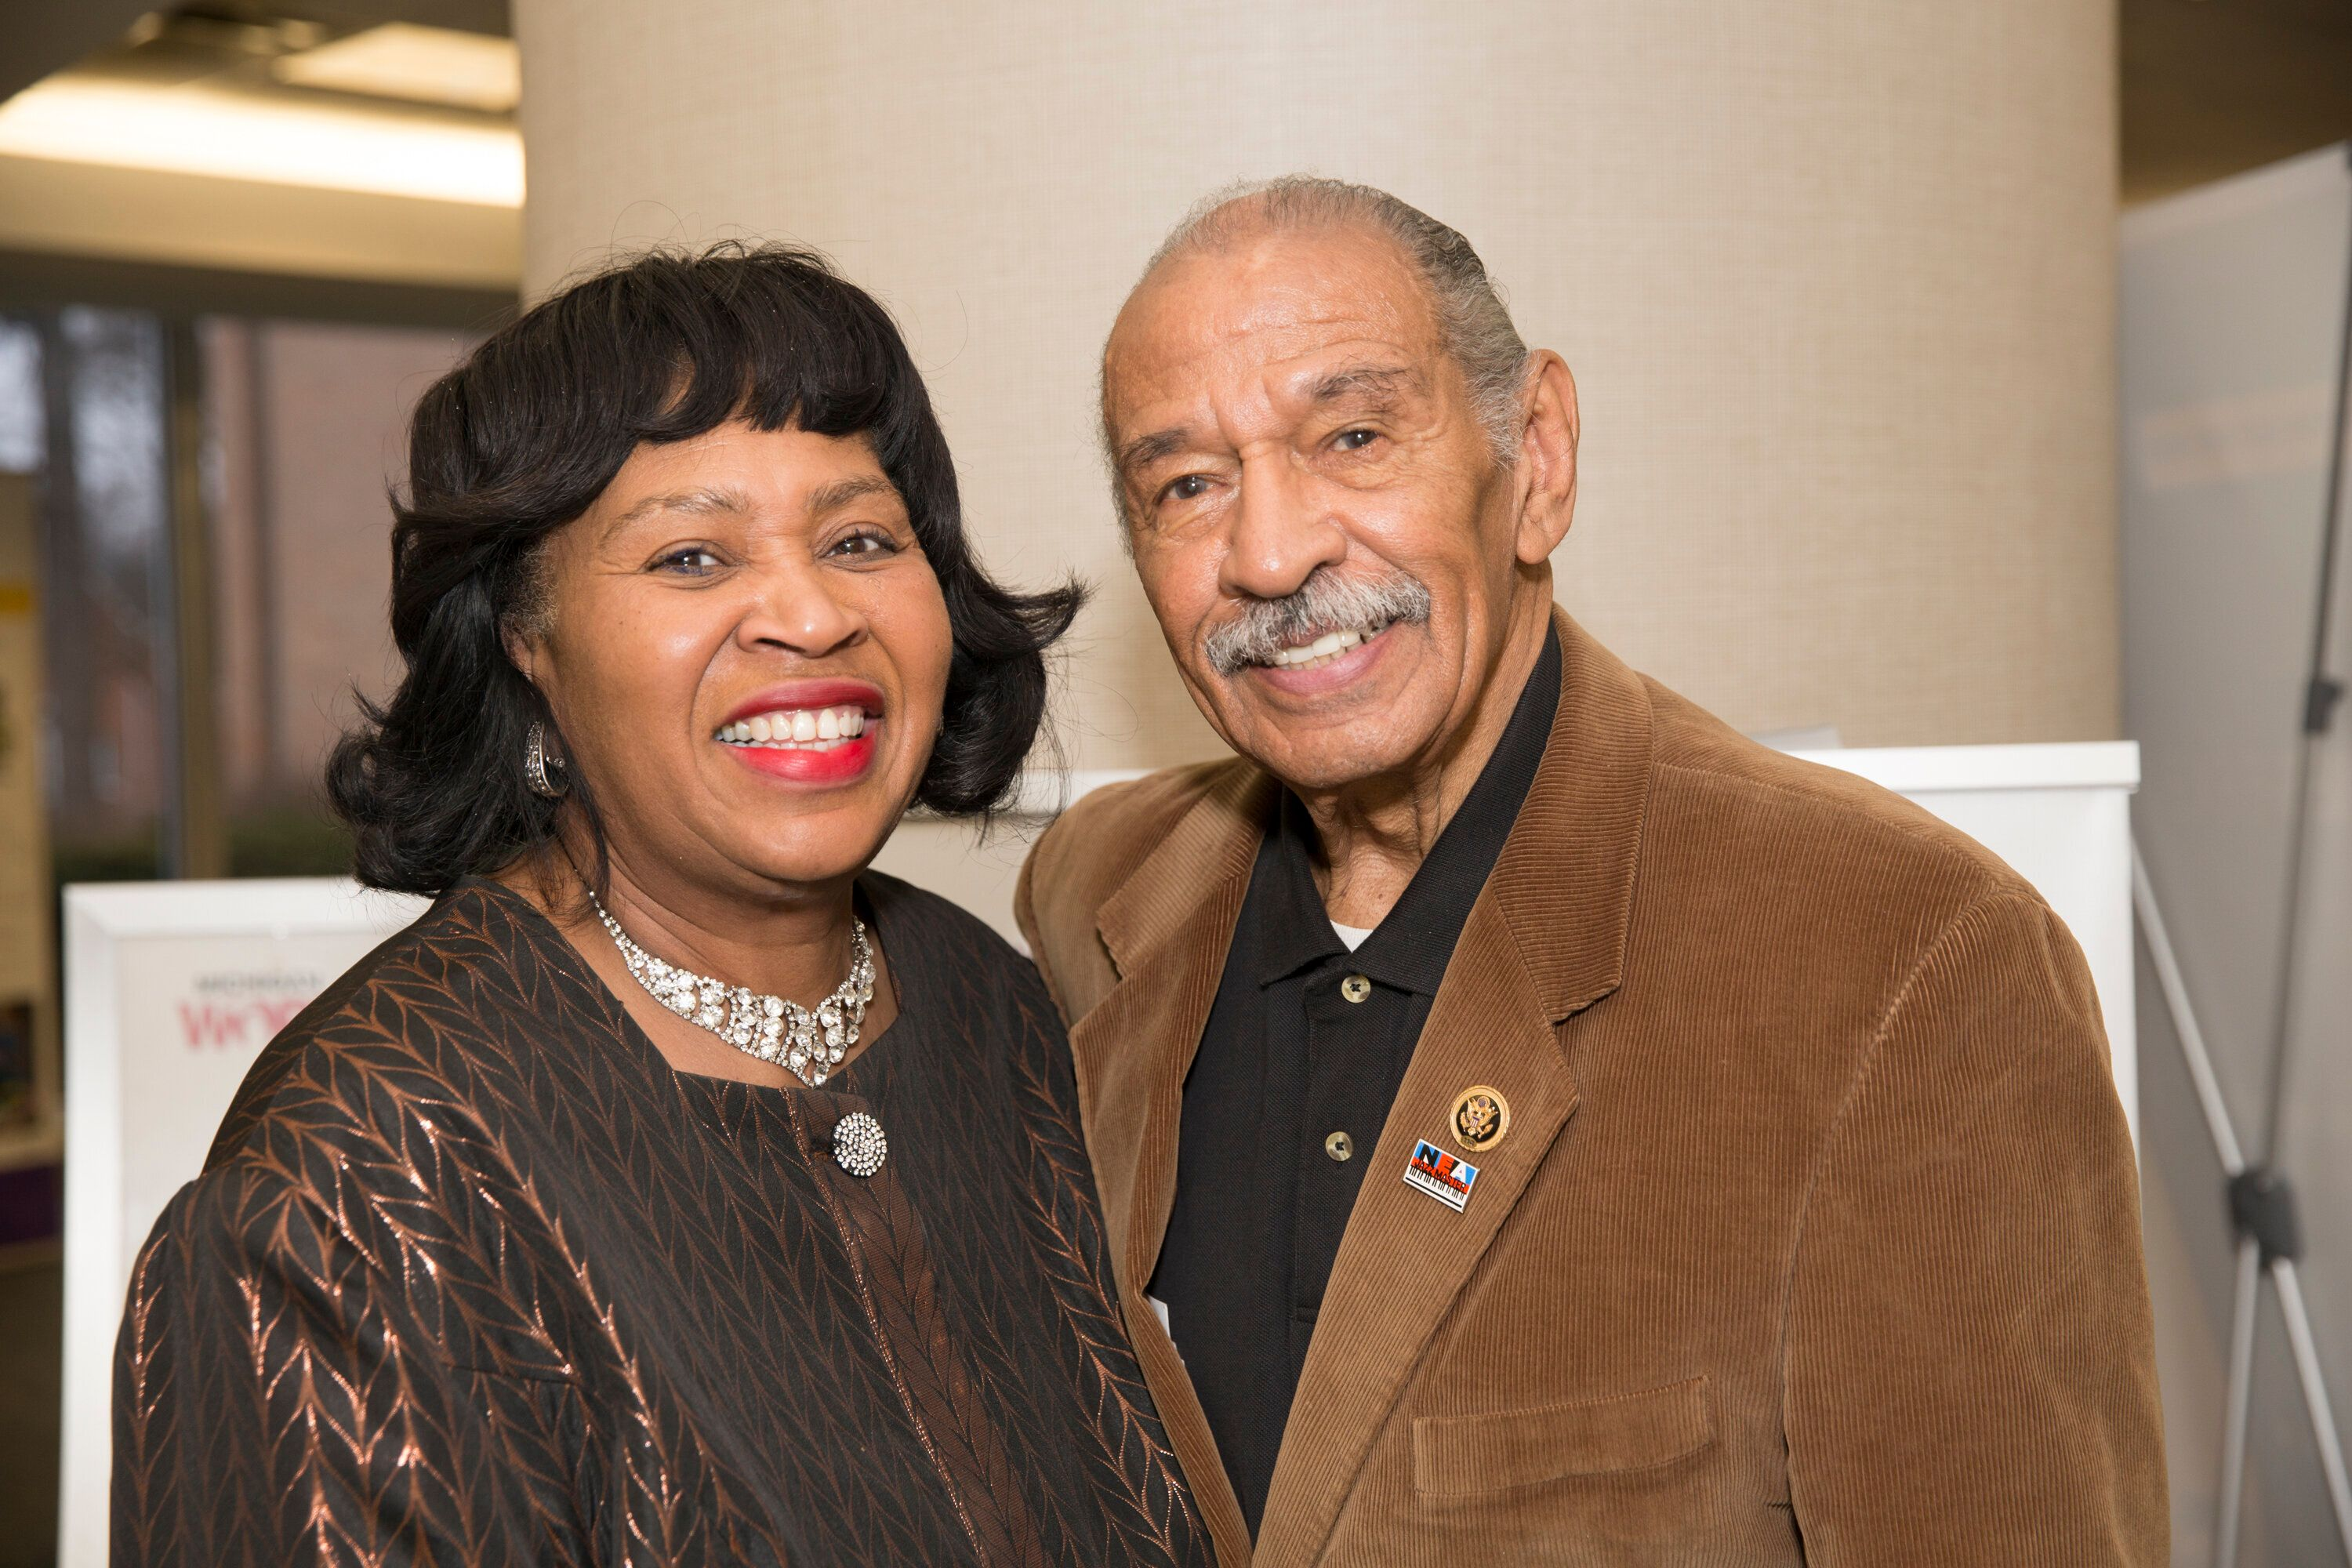 Detroit City Council President Brenda Jones poses with then-Rep. John Conyers Jr. (D-Mich.) in April 2016. Conyers' resignati